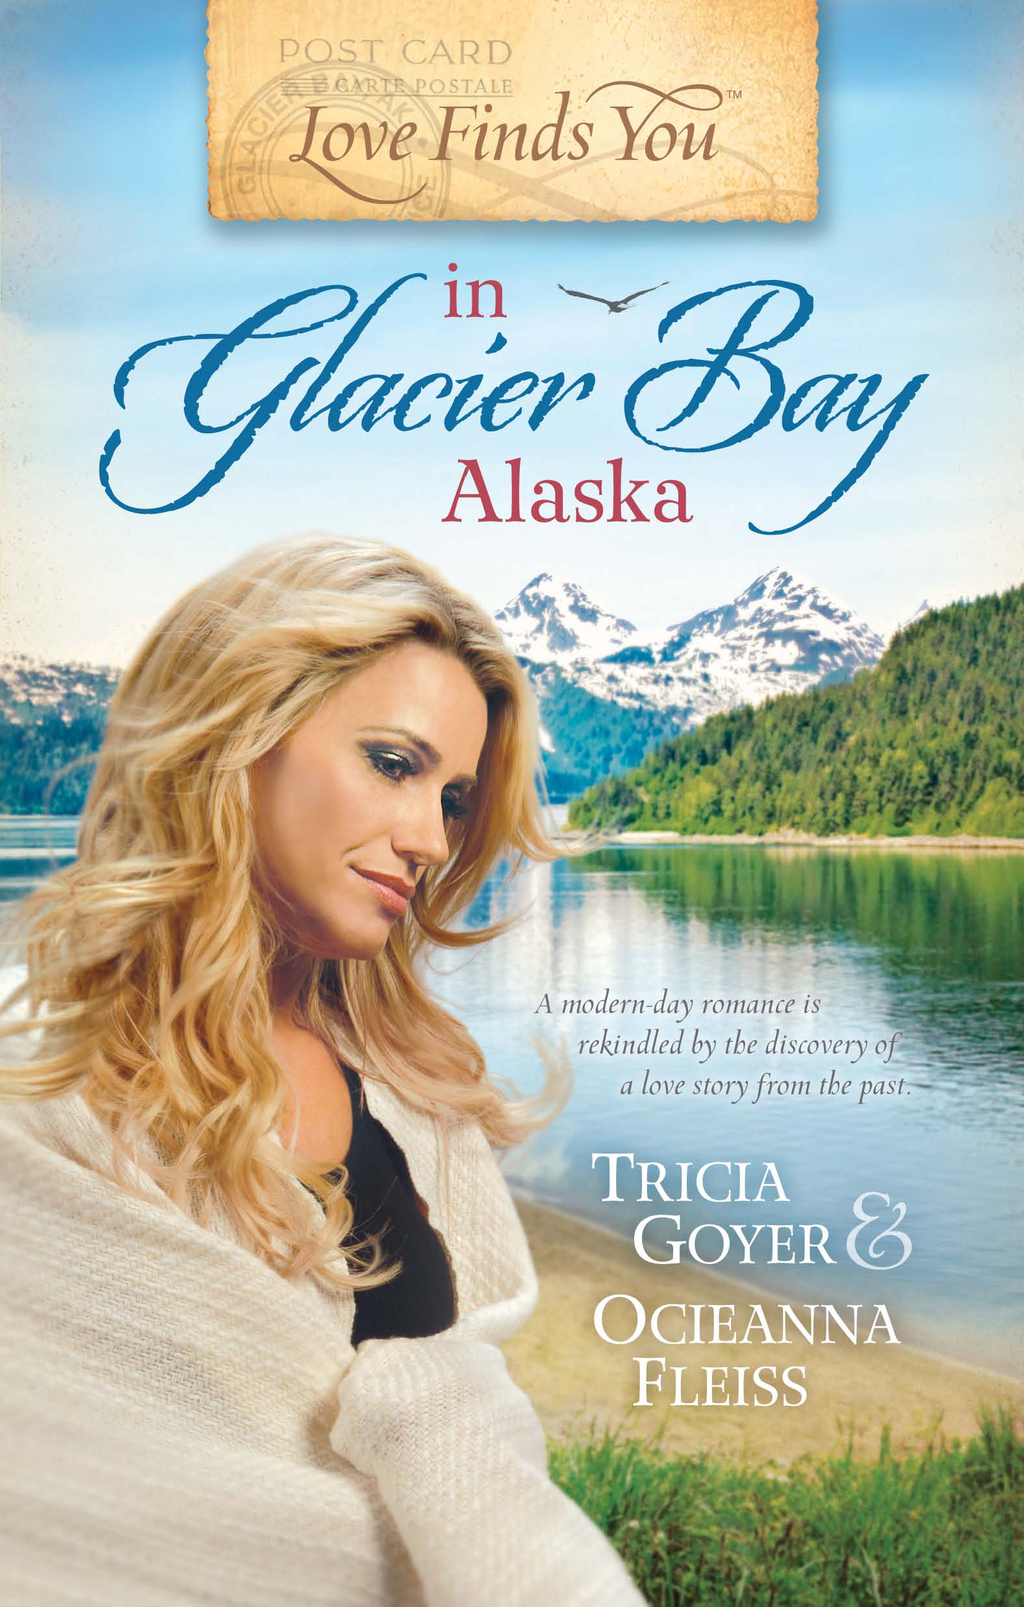 Love Finds You in Glacier Bay, Alaska By: Ocieanna Fleiss,Tricia Goyer